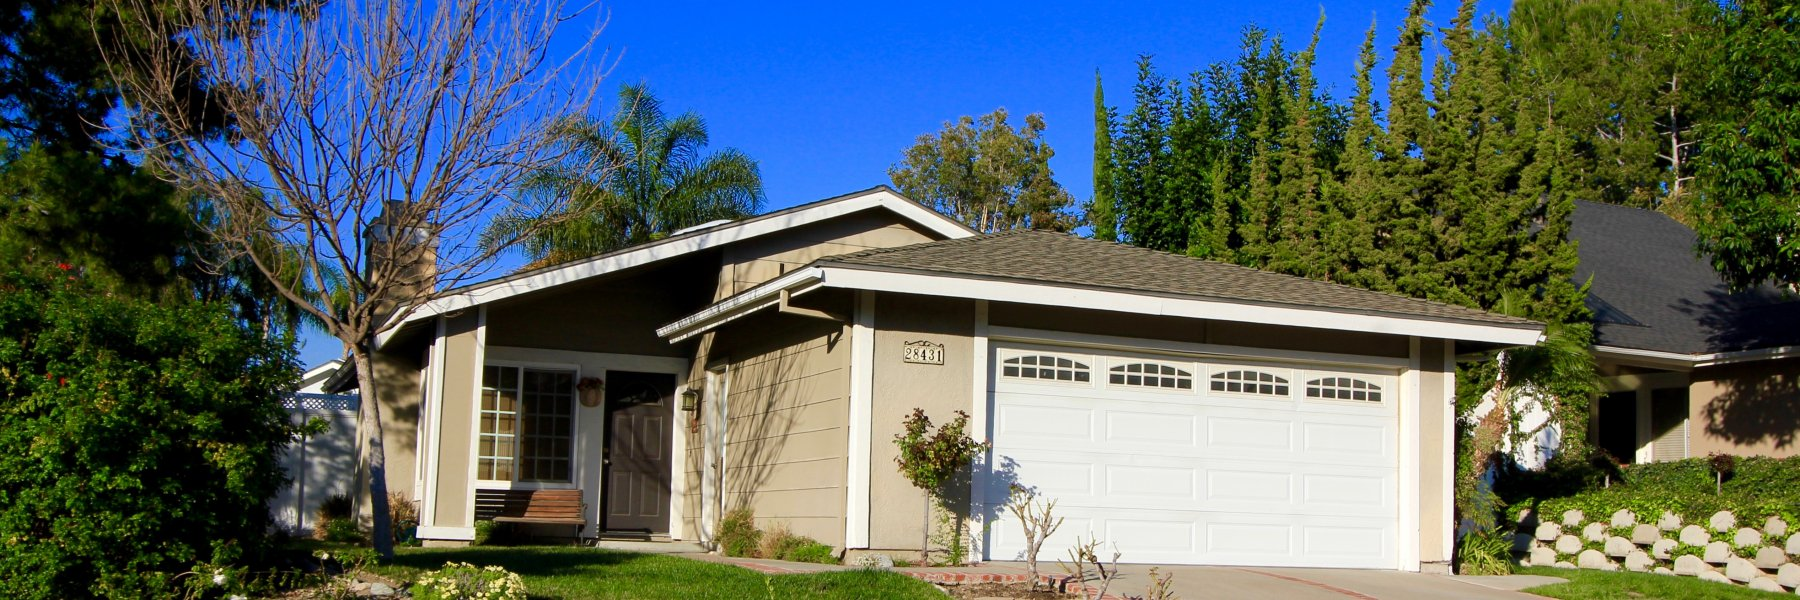 Cordova Vista is a community of homes in Mission Viejo California